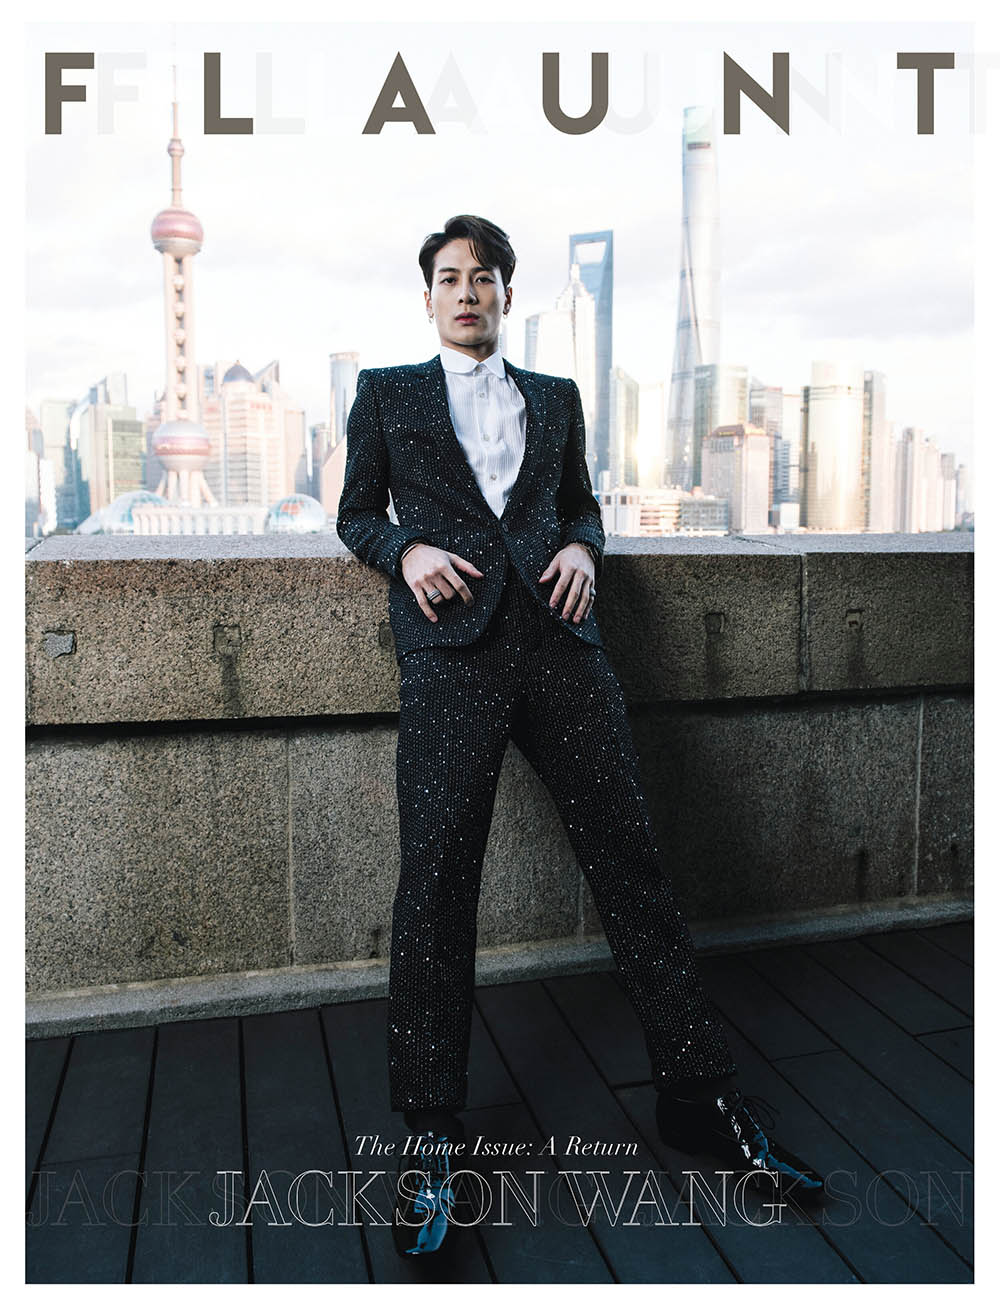 Jackson Wang covers Flaunt Magazine Issue 168 by Ian Morrison